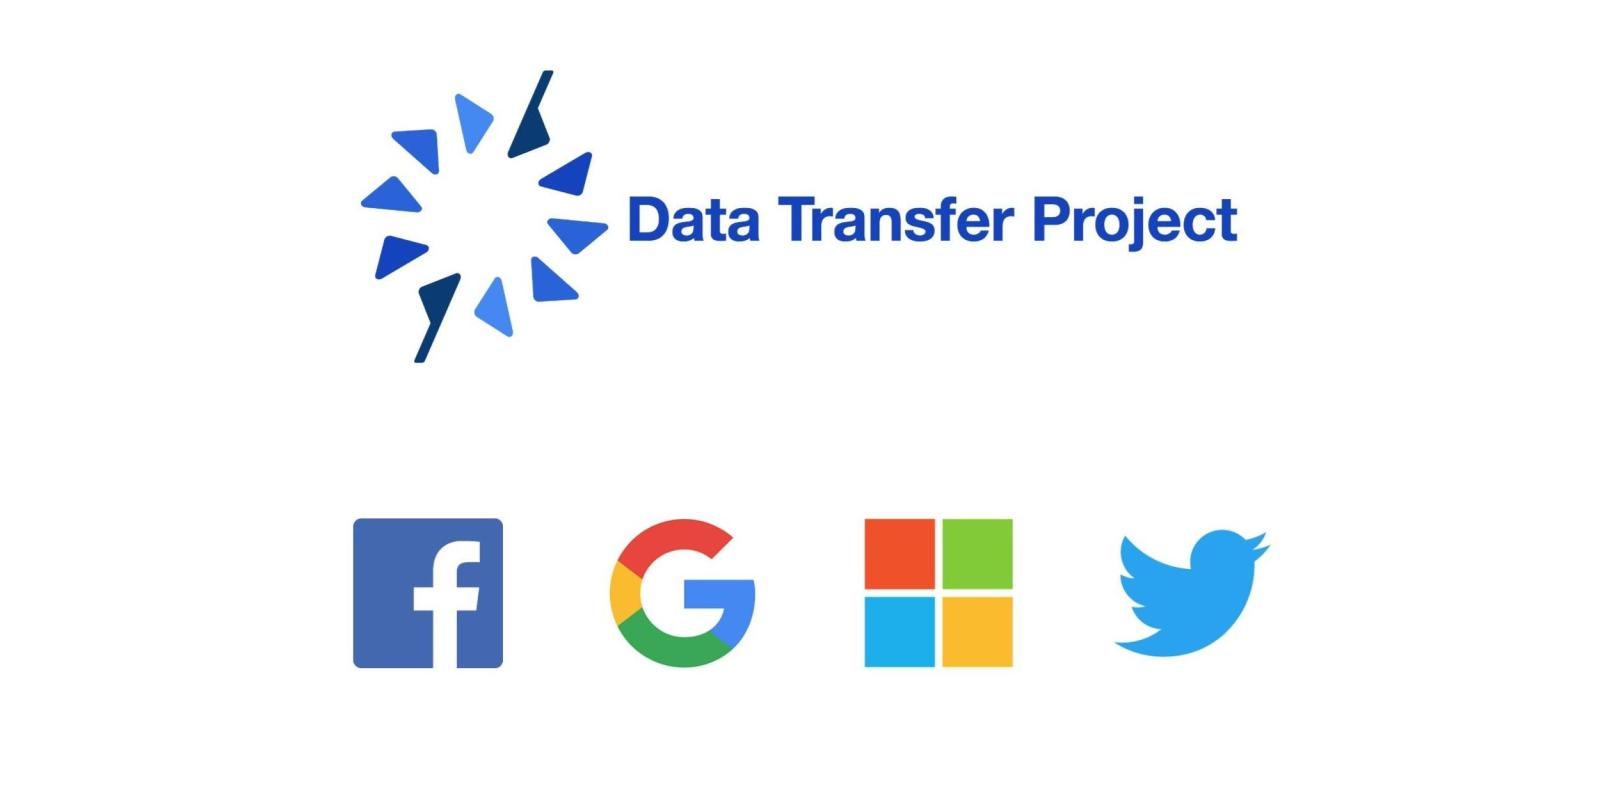 Google Data Transfer Project